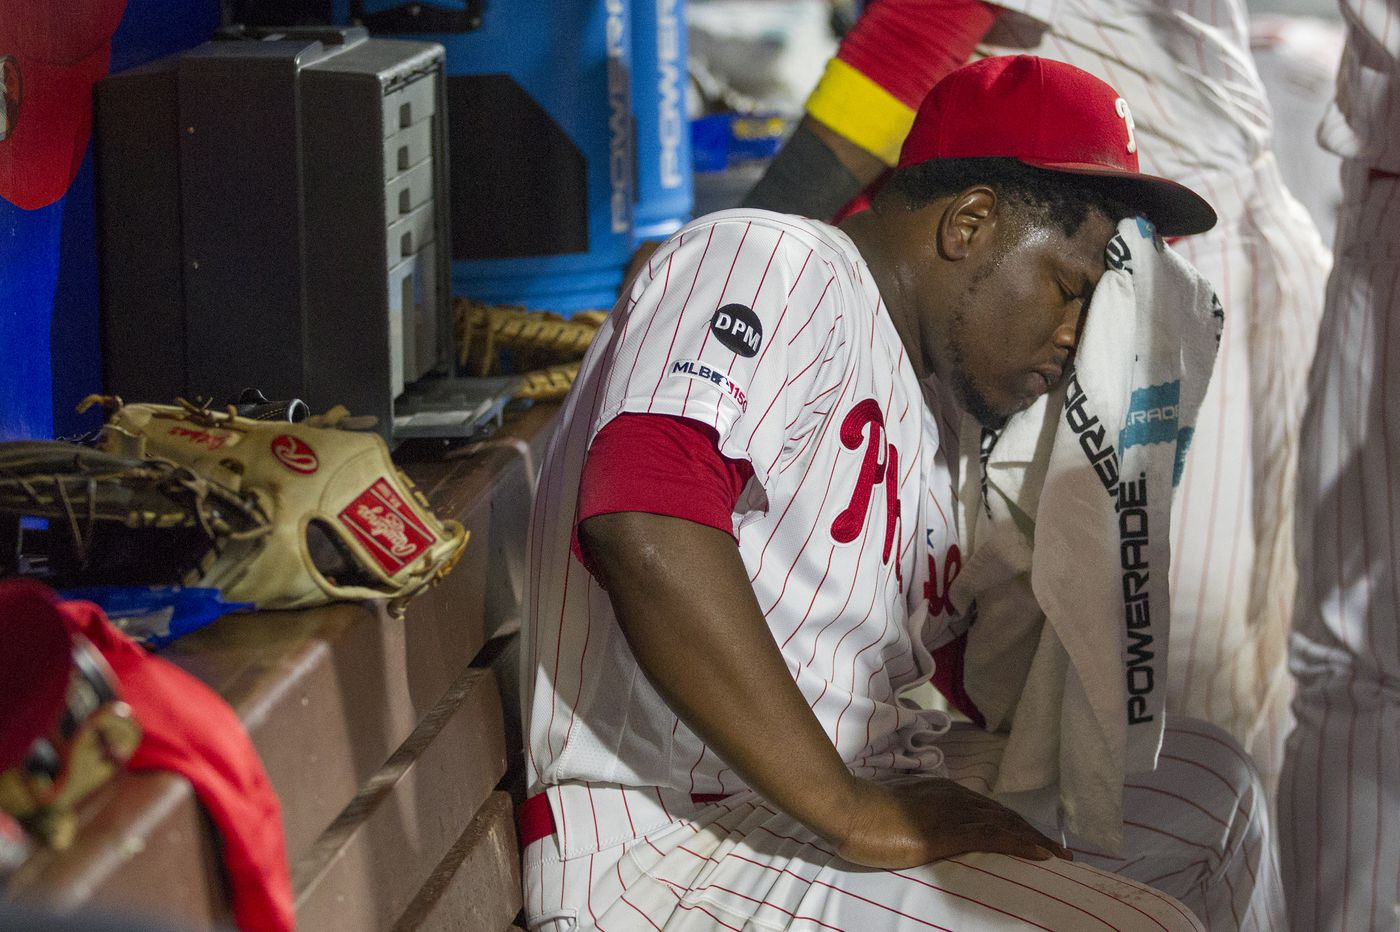 You know baseball is back because Phillies have same old bullpen questions   Extra Innings